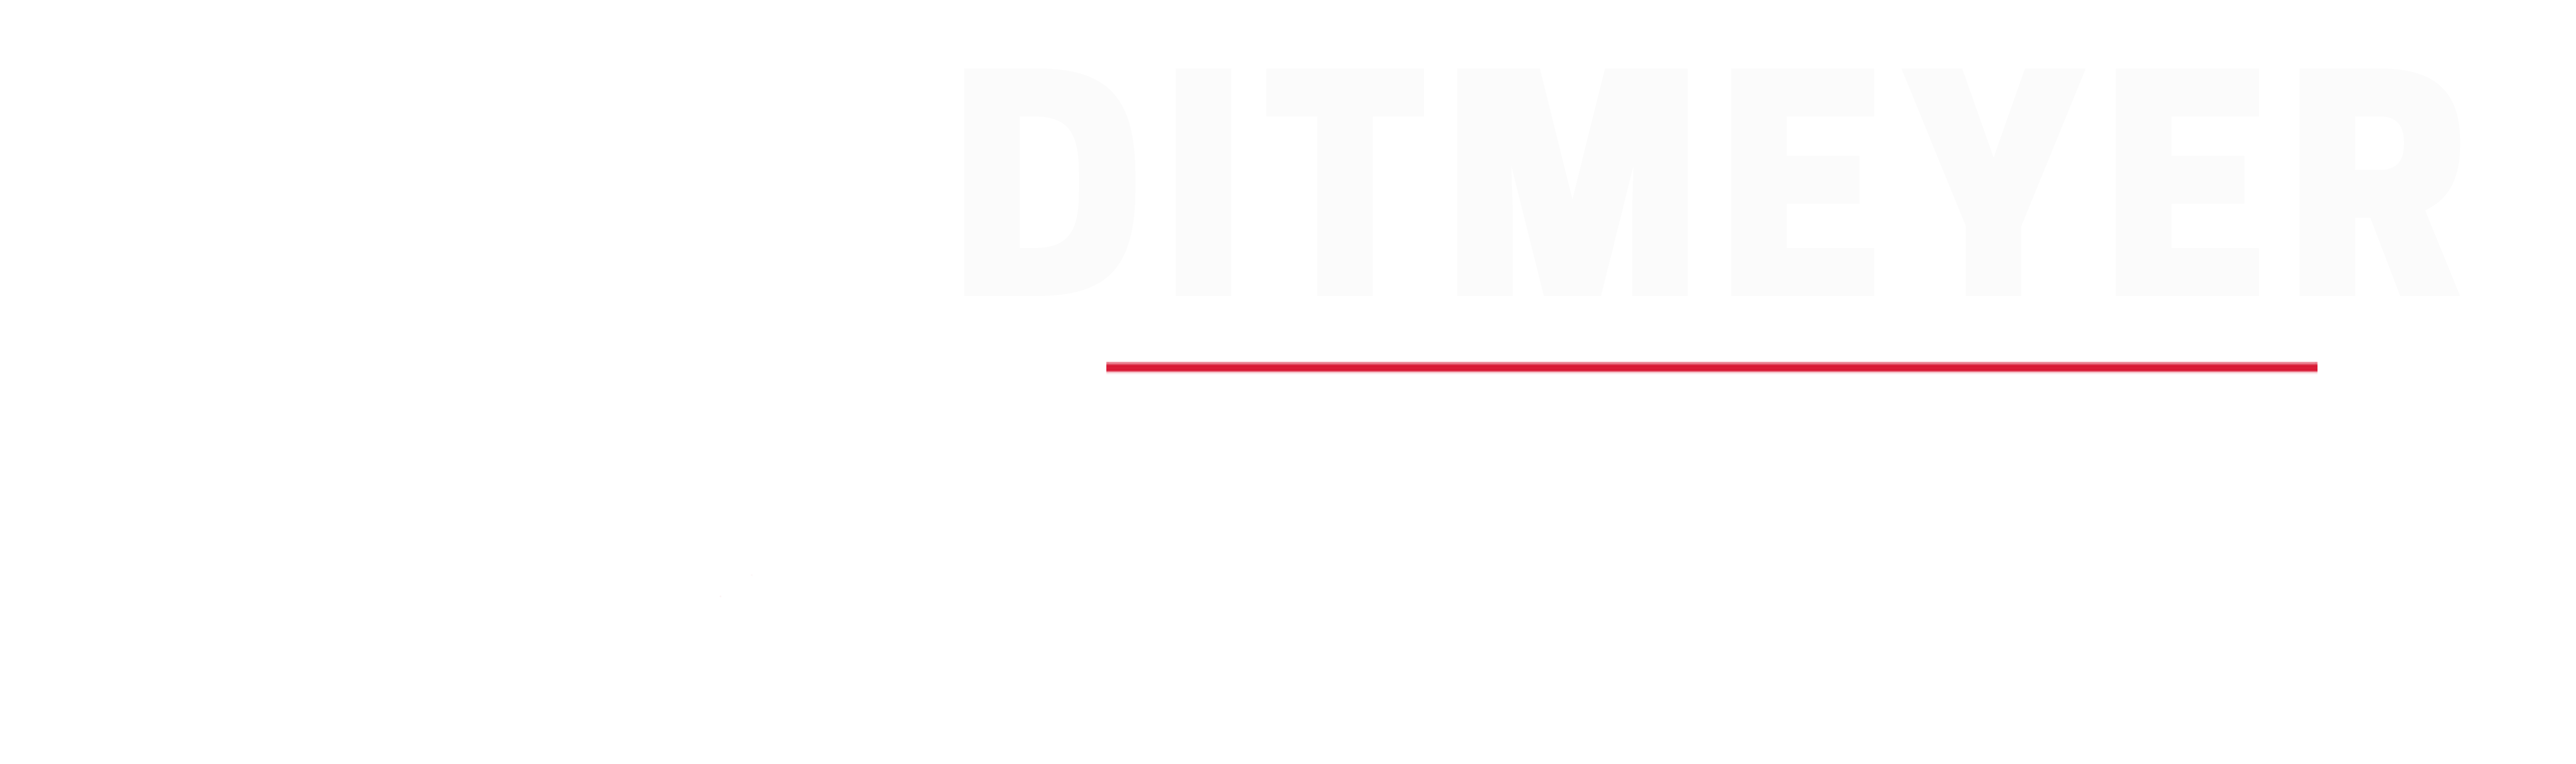 Ditmeyer Consulting